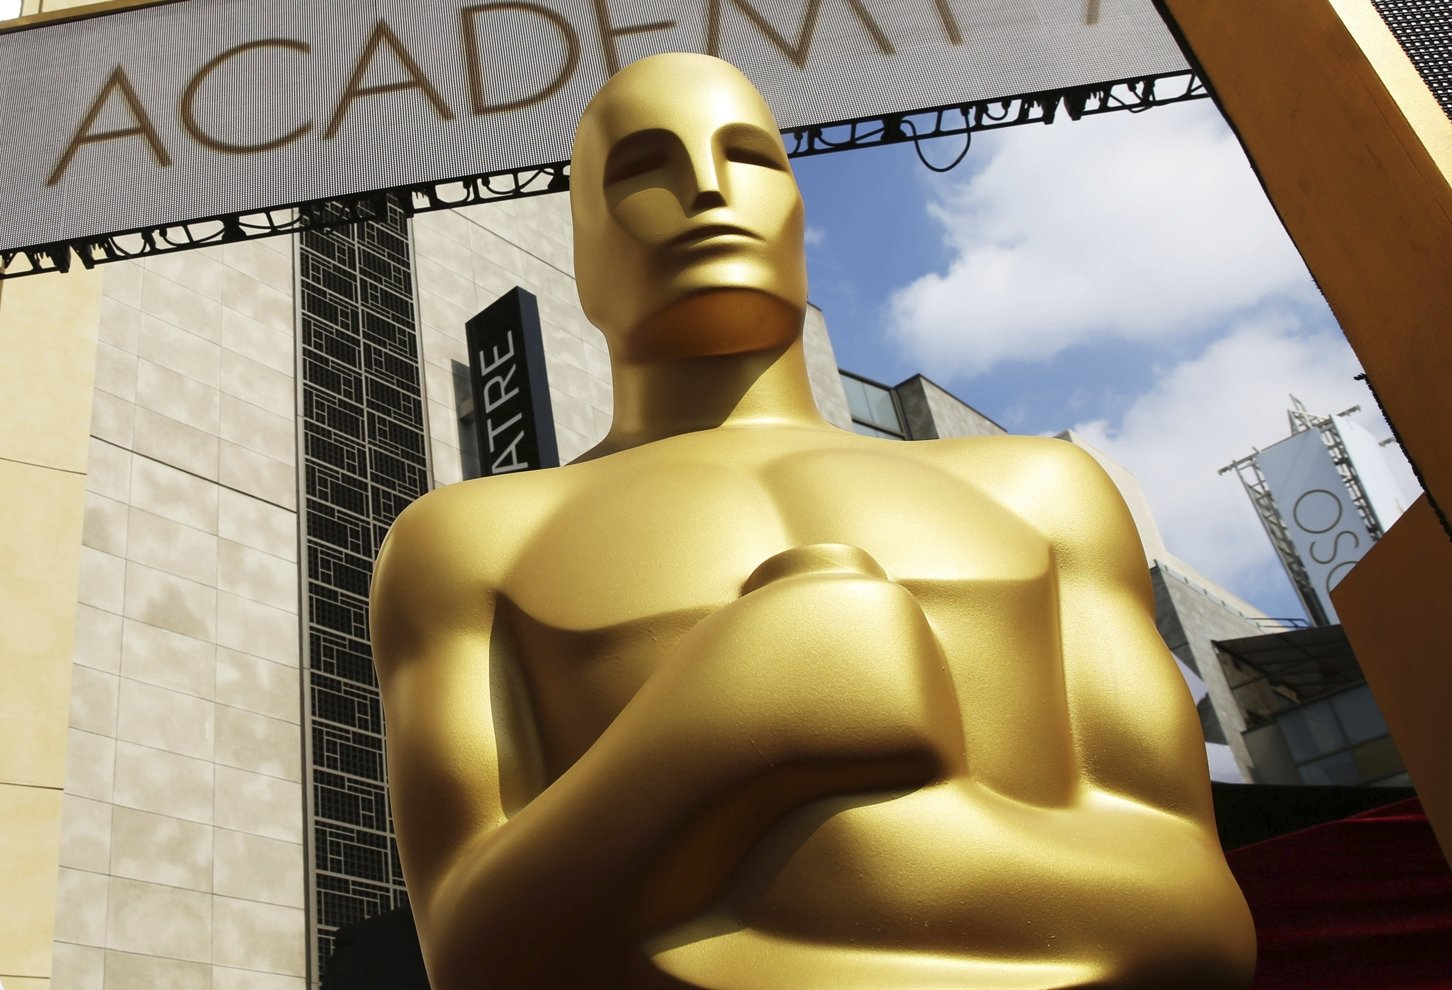 An Oscar statue stands outside the Dolby Theatre for the 87th Academy Awards in Los Angeles, California, the U.S., Feb. 21, 2015. (AP File Photo)